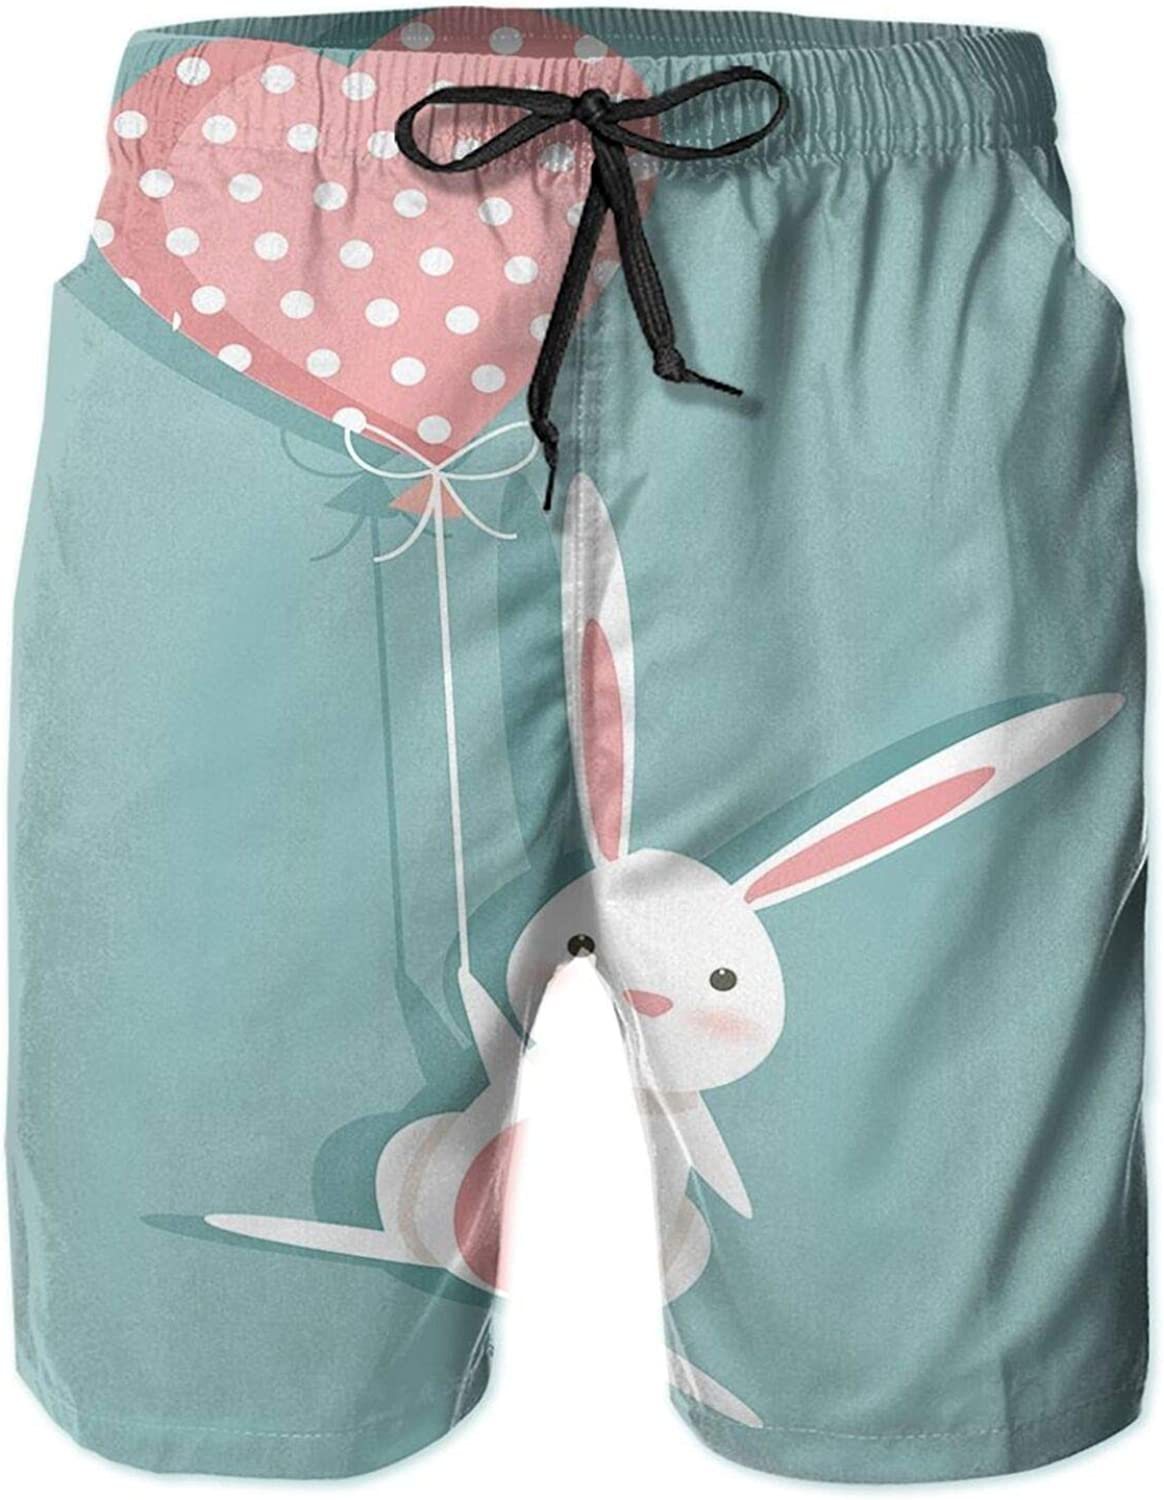 Sweet Bunny Holding A Heart Shaped Balloon with Dots Romantic Rabbit in Love Swimming Trunks for Men Beach Shorts Casual Style,L